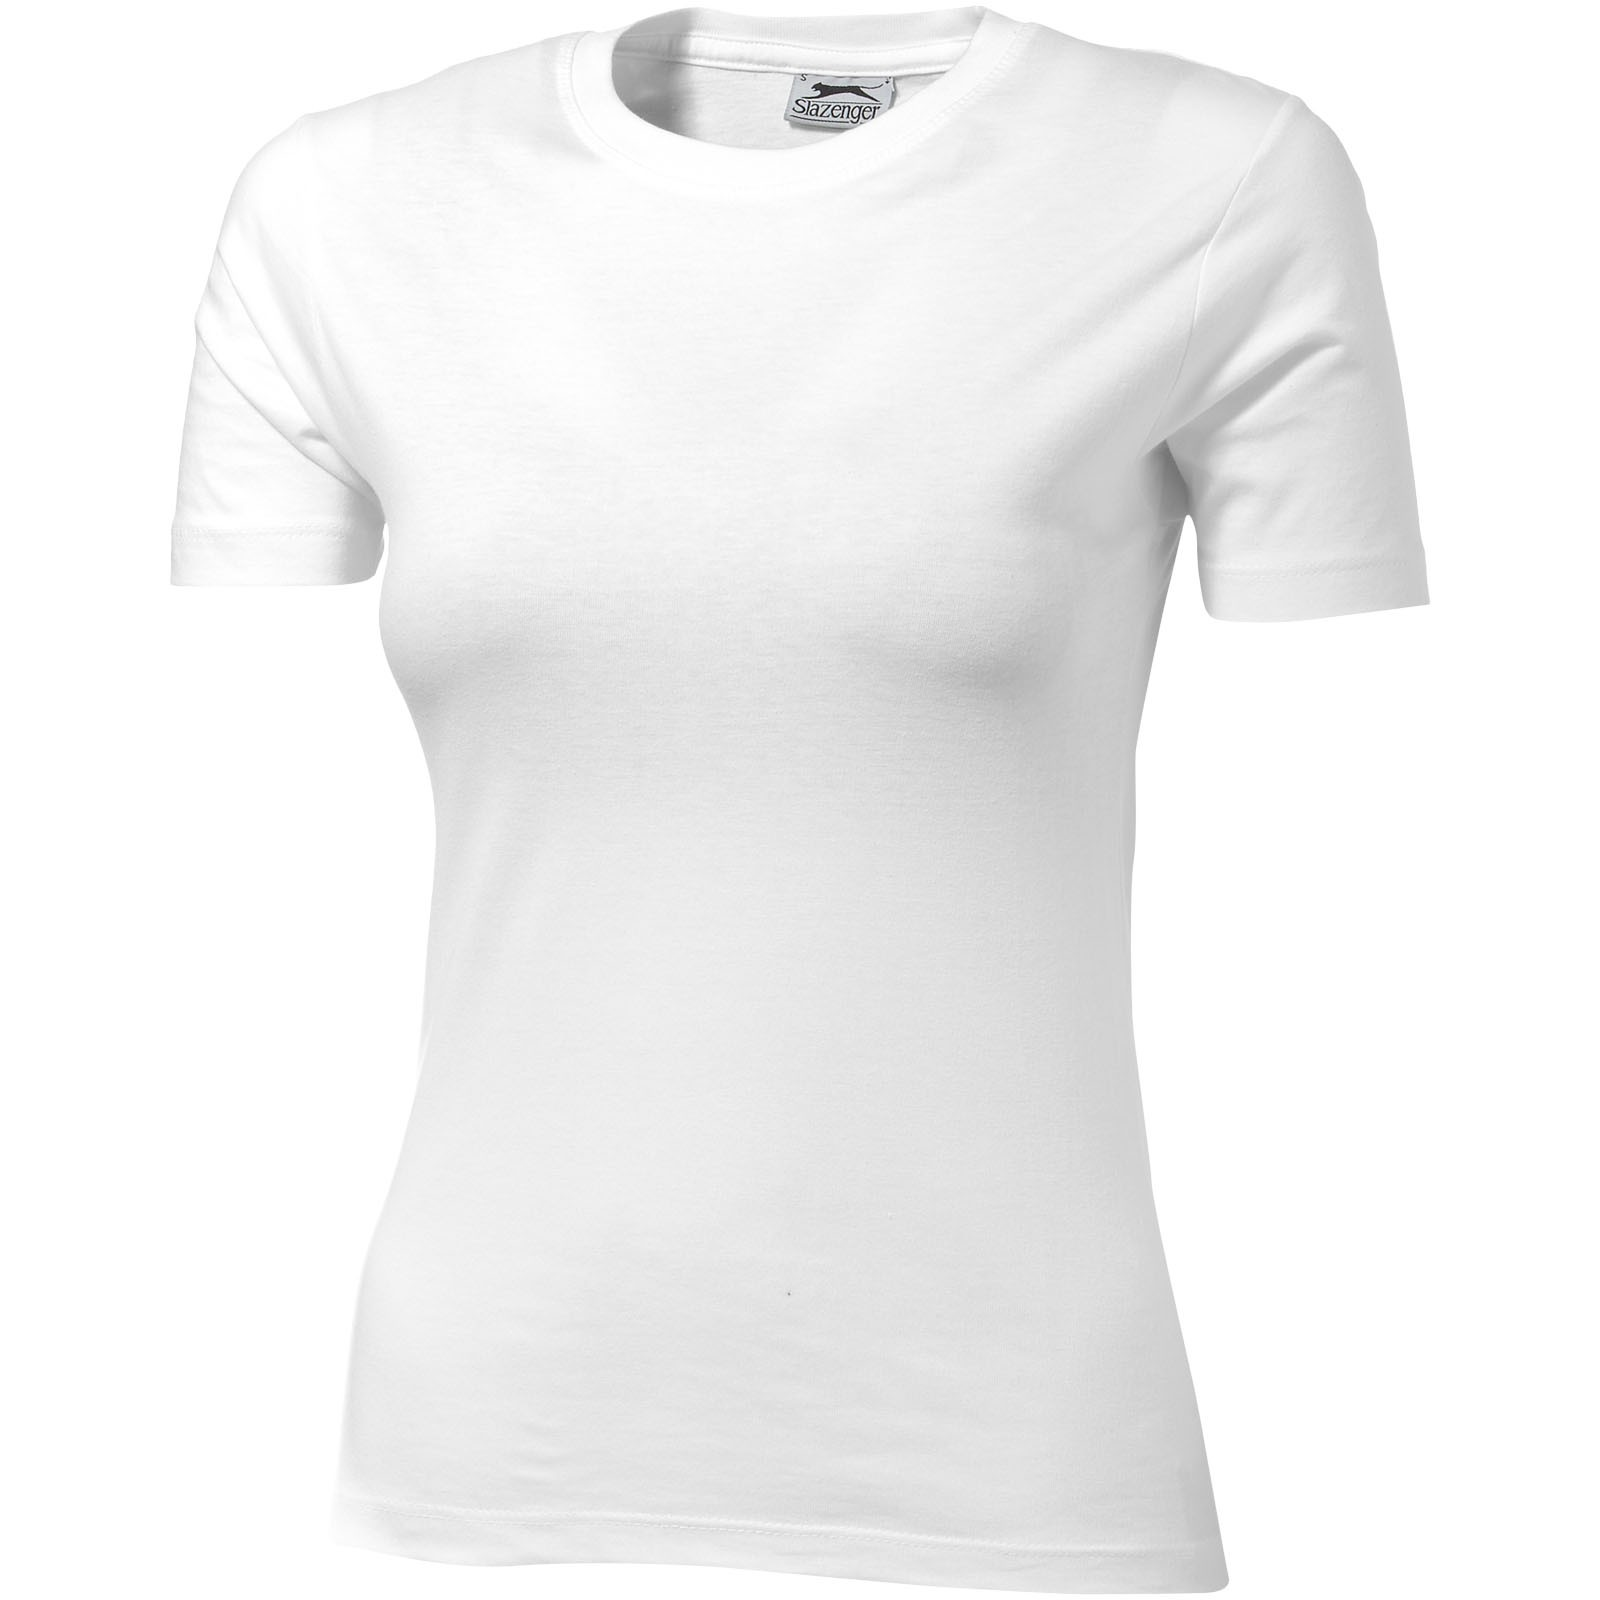 Ace short sleeve women's t-shirt - White / S